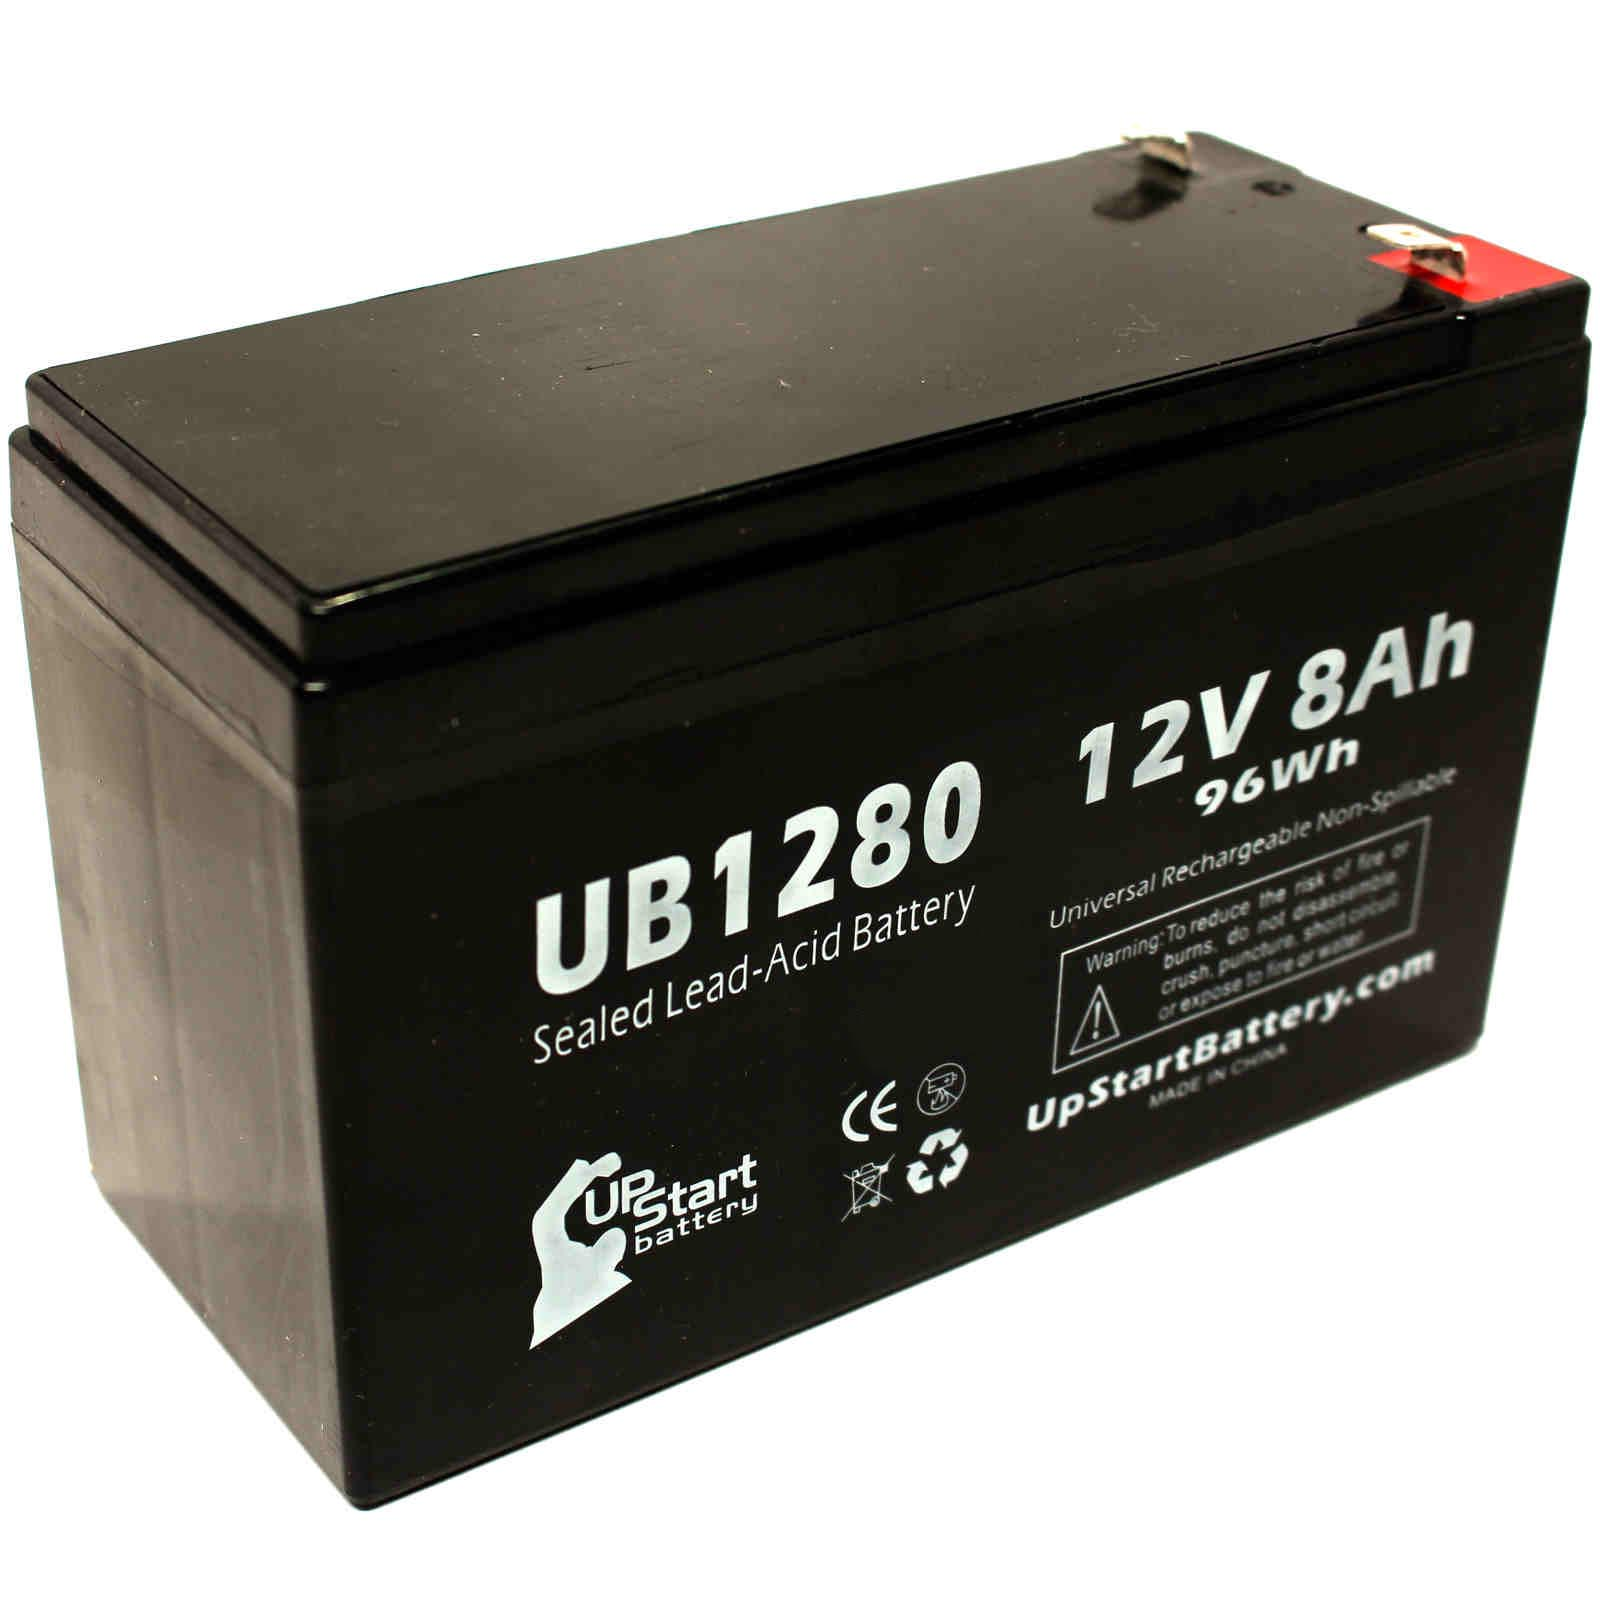 UpStart Battery Invivo Research Inc OMEGA BLOOD PRESSURE MONITOR 1000 Battery - Replacement UB1280 Universal SLA Battery (12V, 8Ah, 8000mAh) at Sears.com